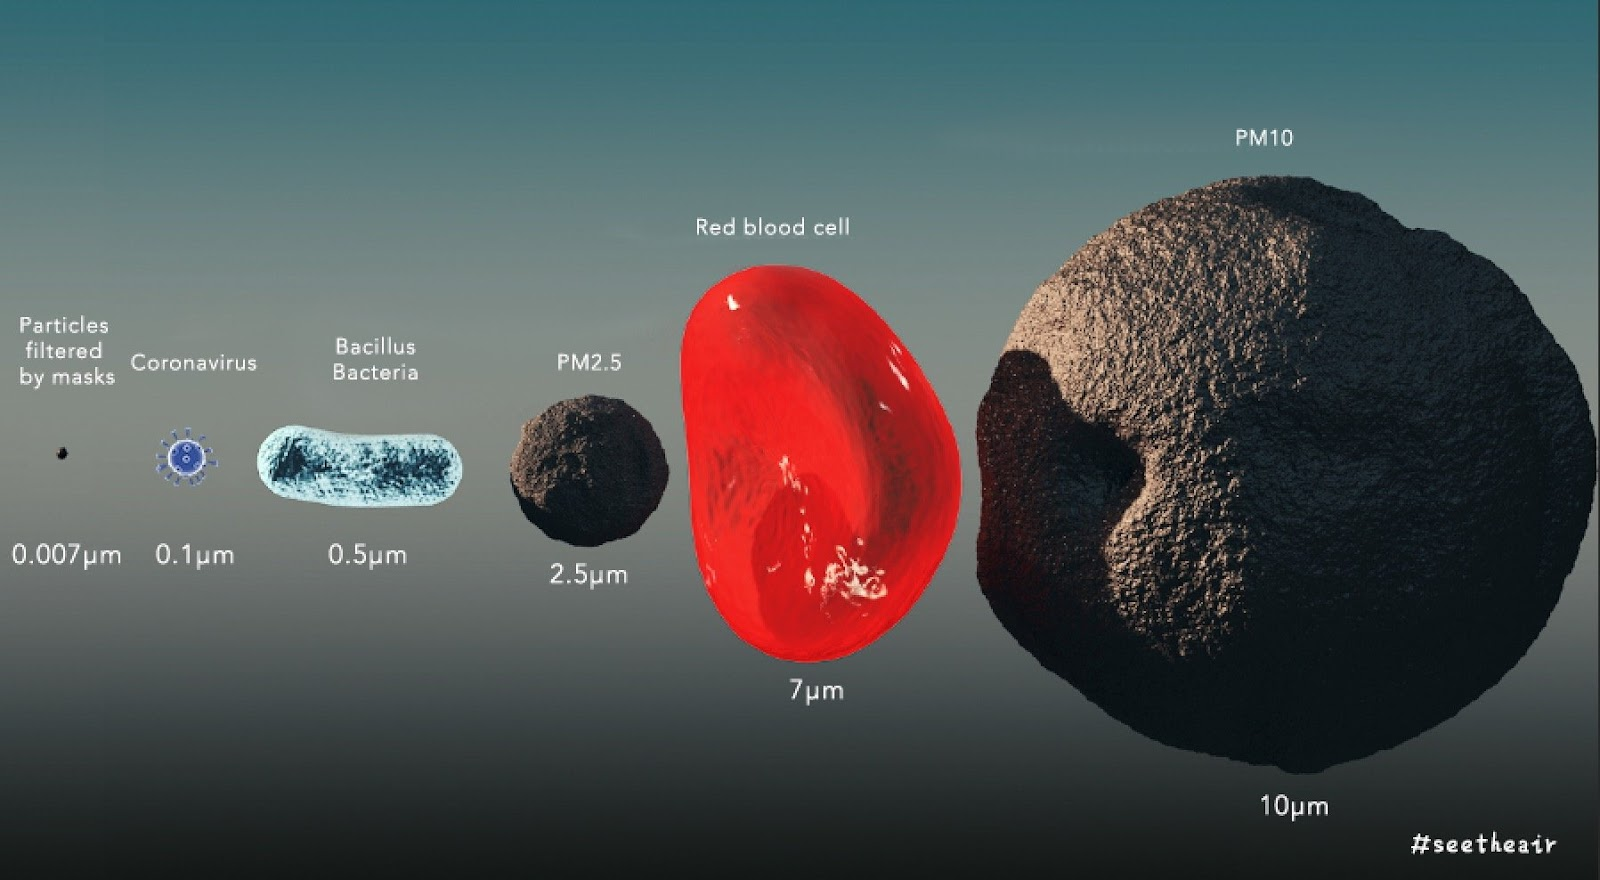 Size of coronavirus particle pm2.5 and bacteria